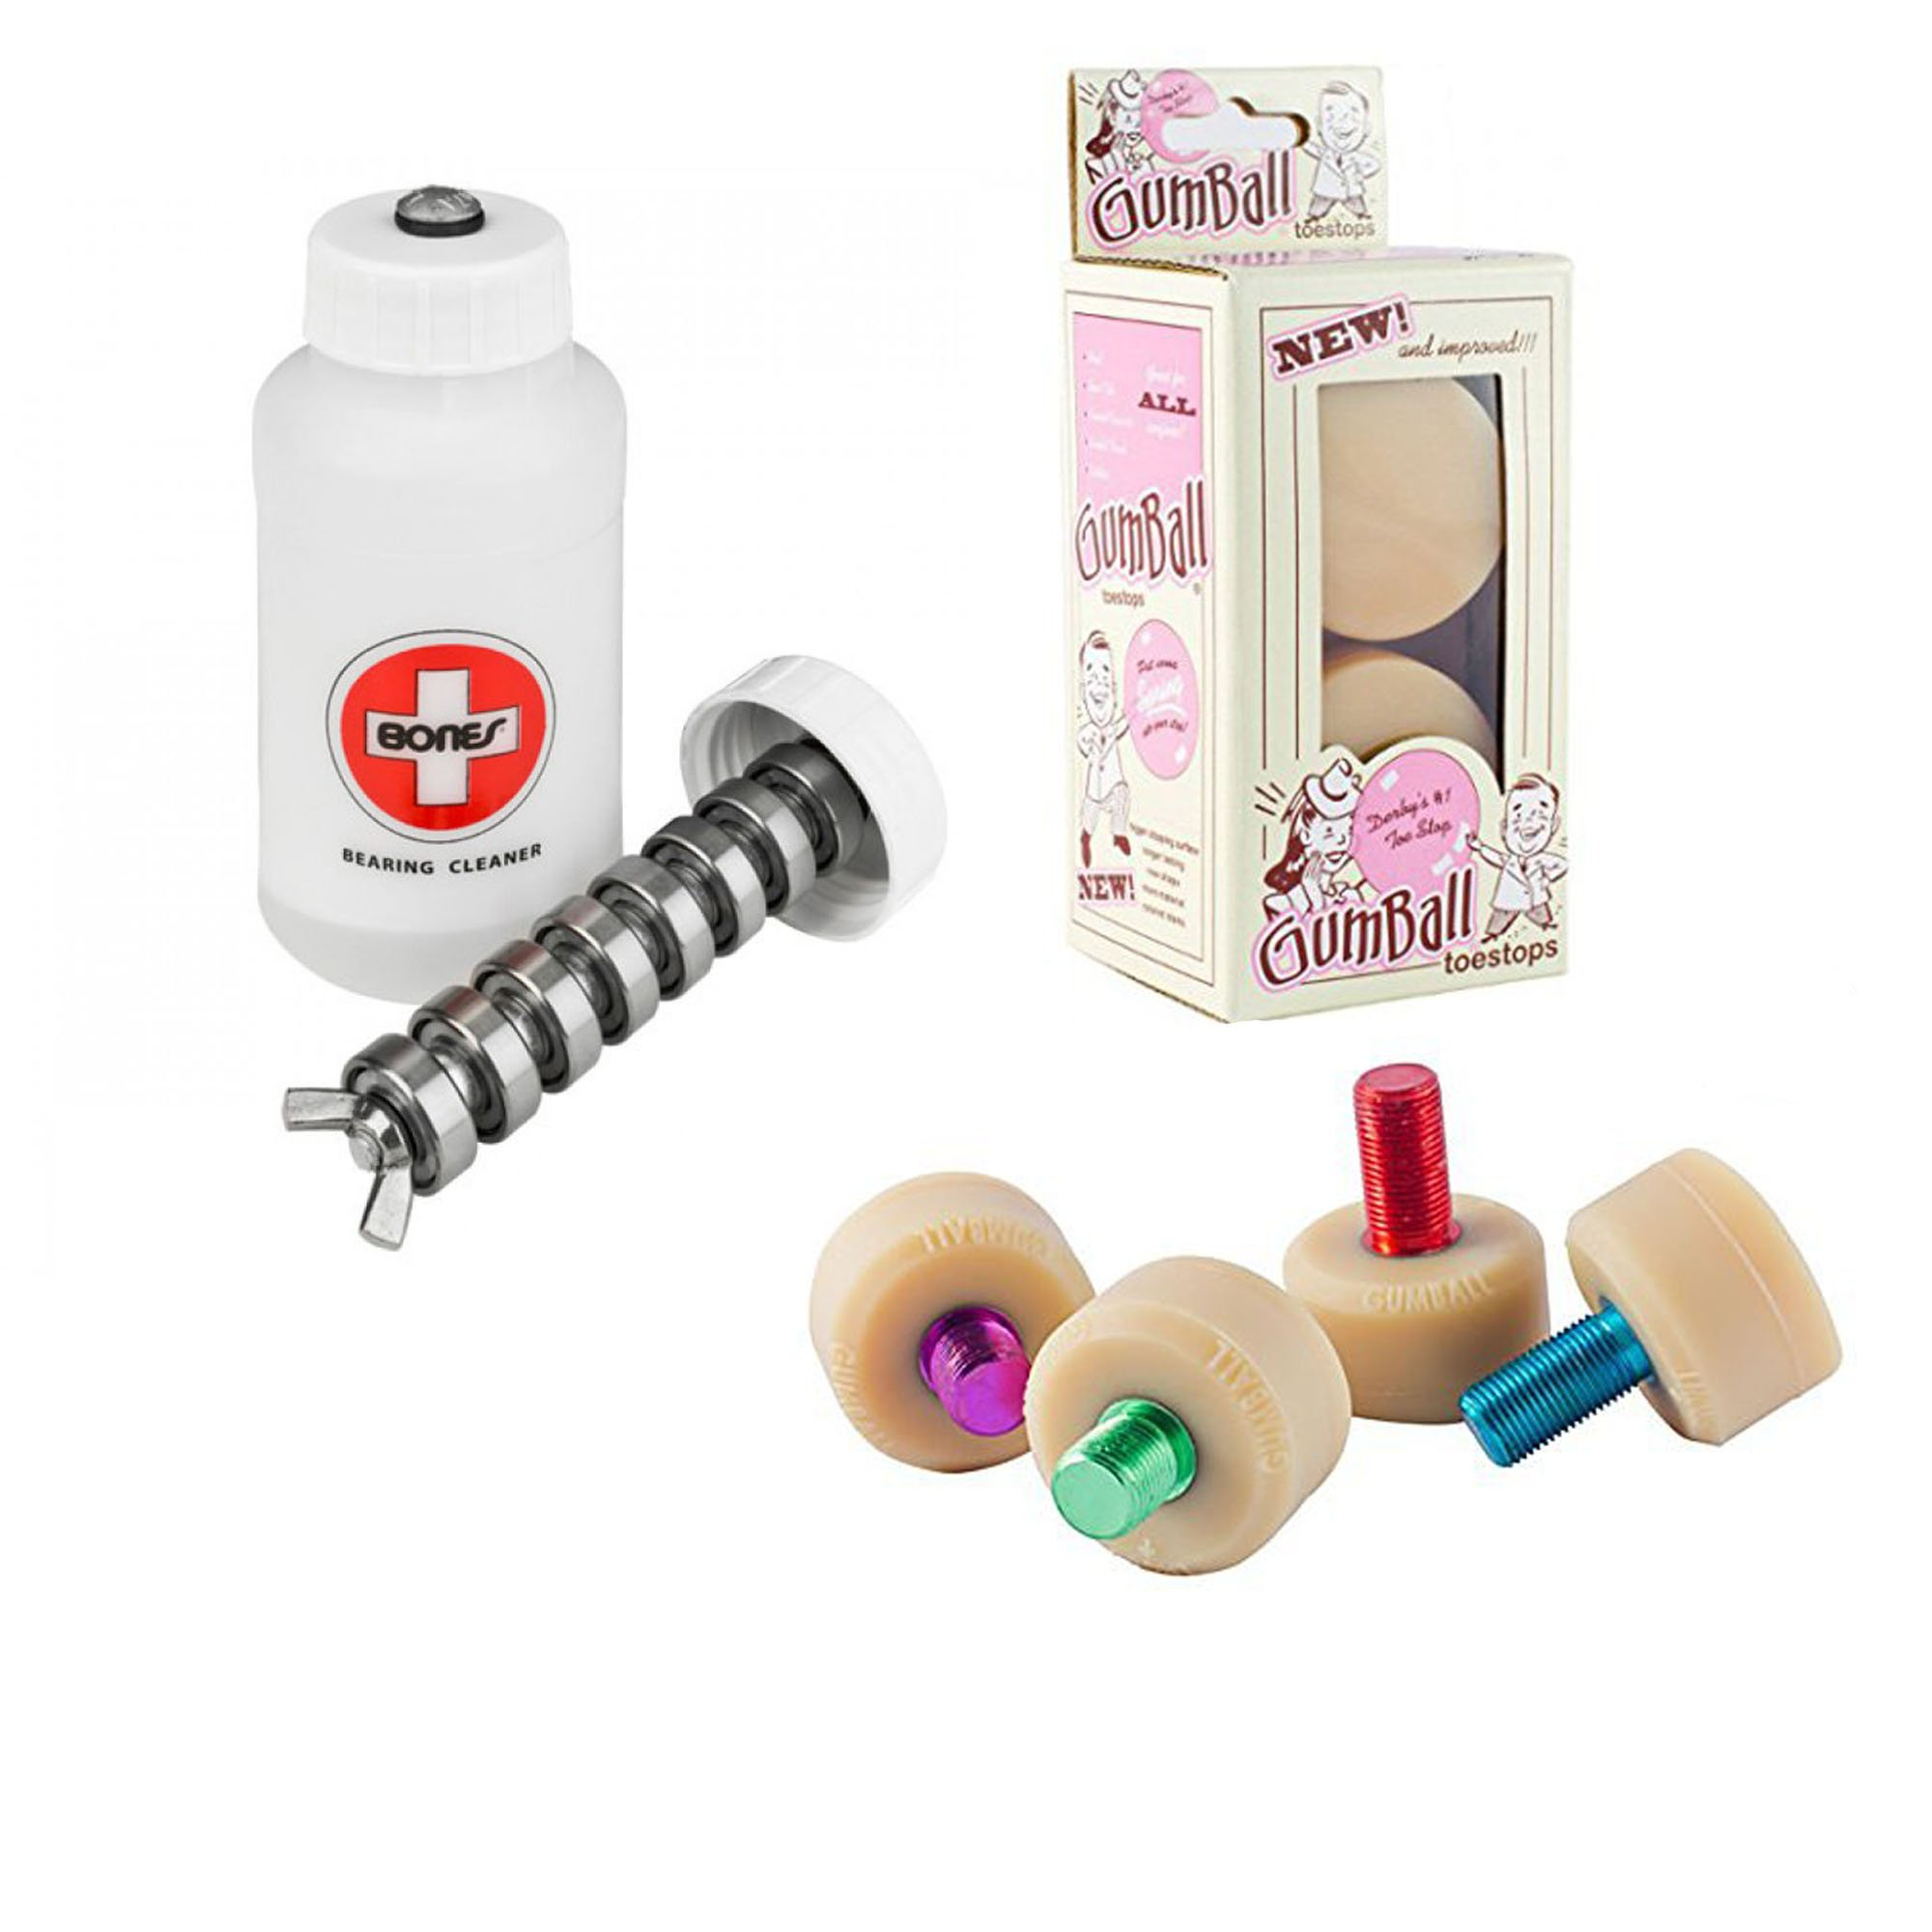 Gumball Toe Stops - Short Stem Gum Ball Roller Derby Skate Stops & Bones Skate Bearings Cleaning Unit by Gum Ball Toe Stops